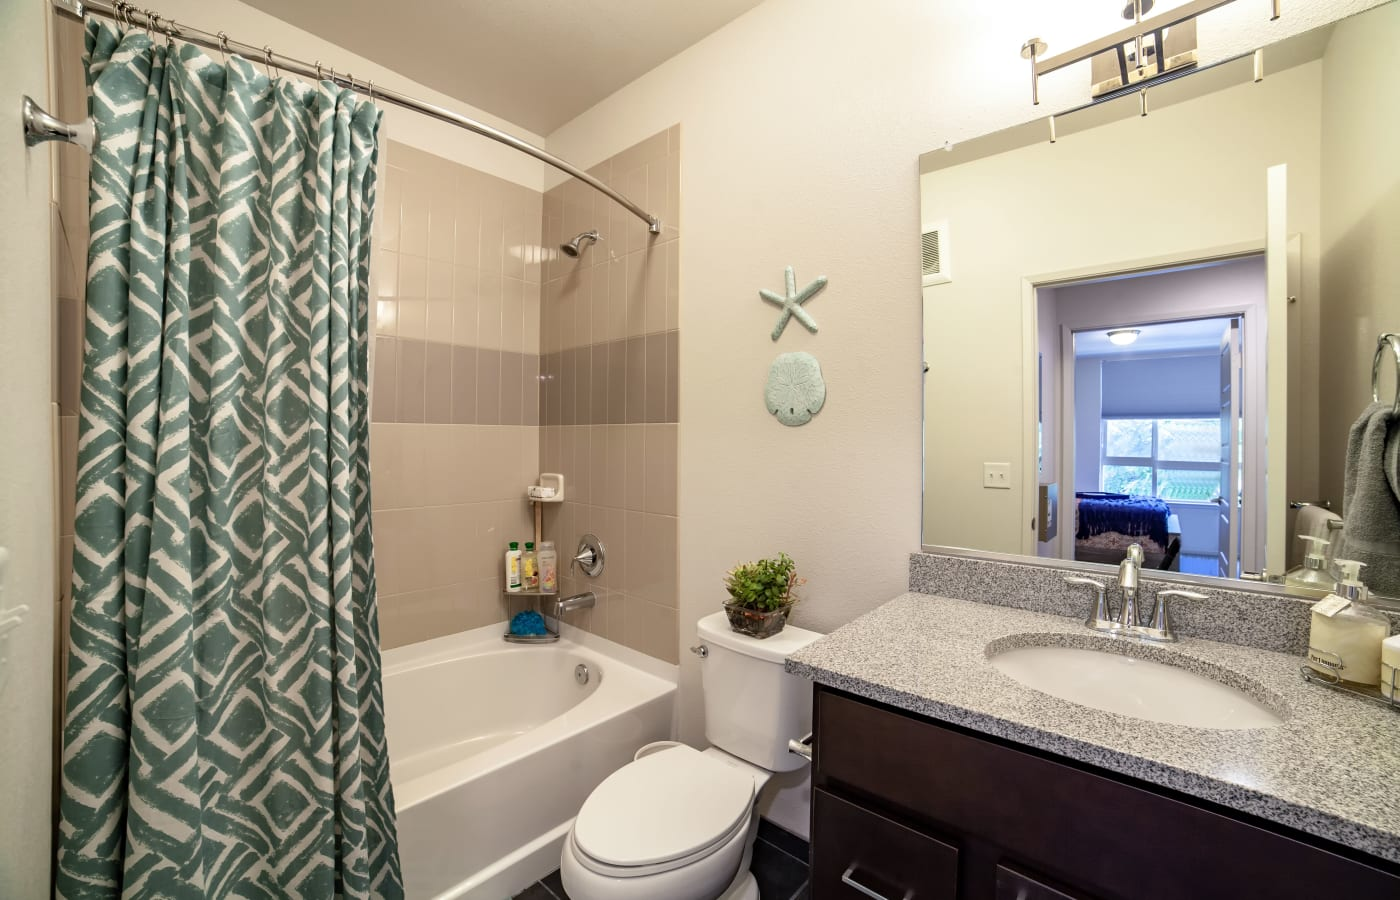 Spacious bathroom at Kapolei Lofts in Kapolei, Hawaii